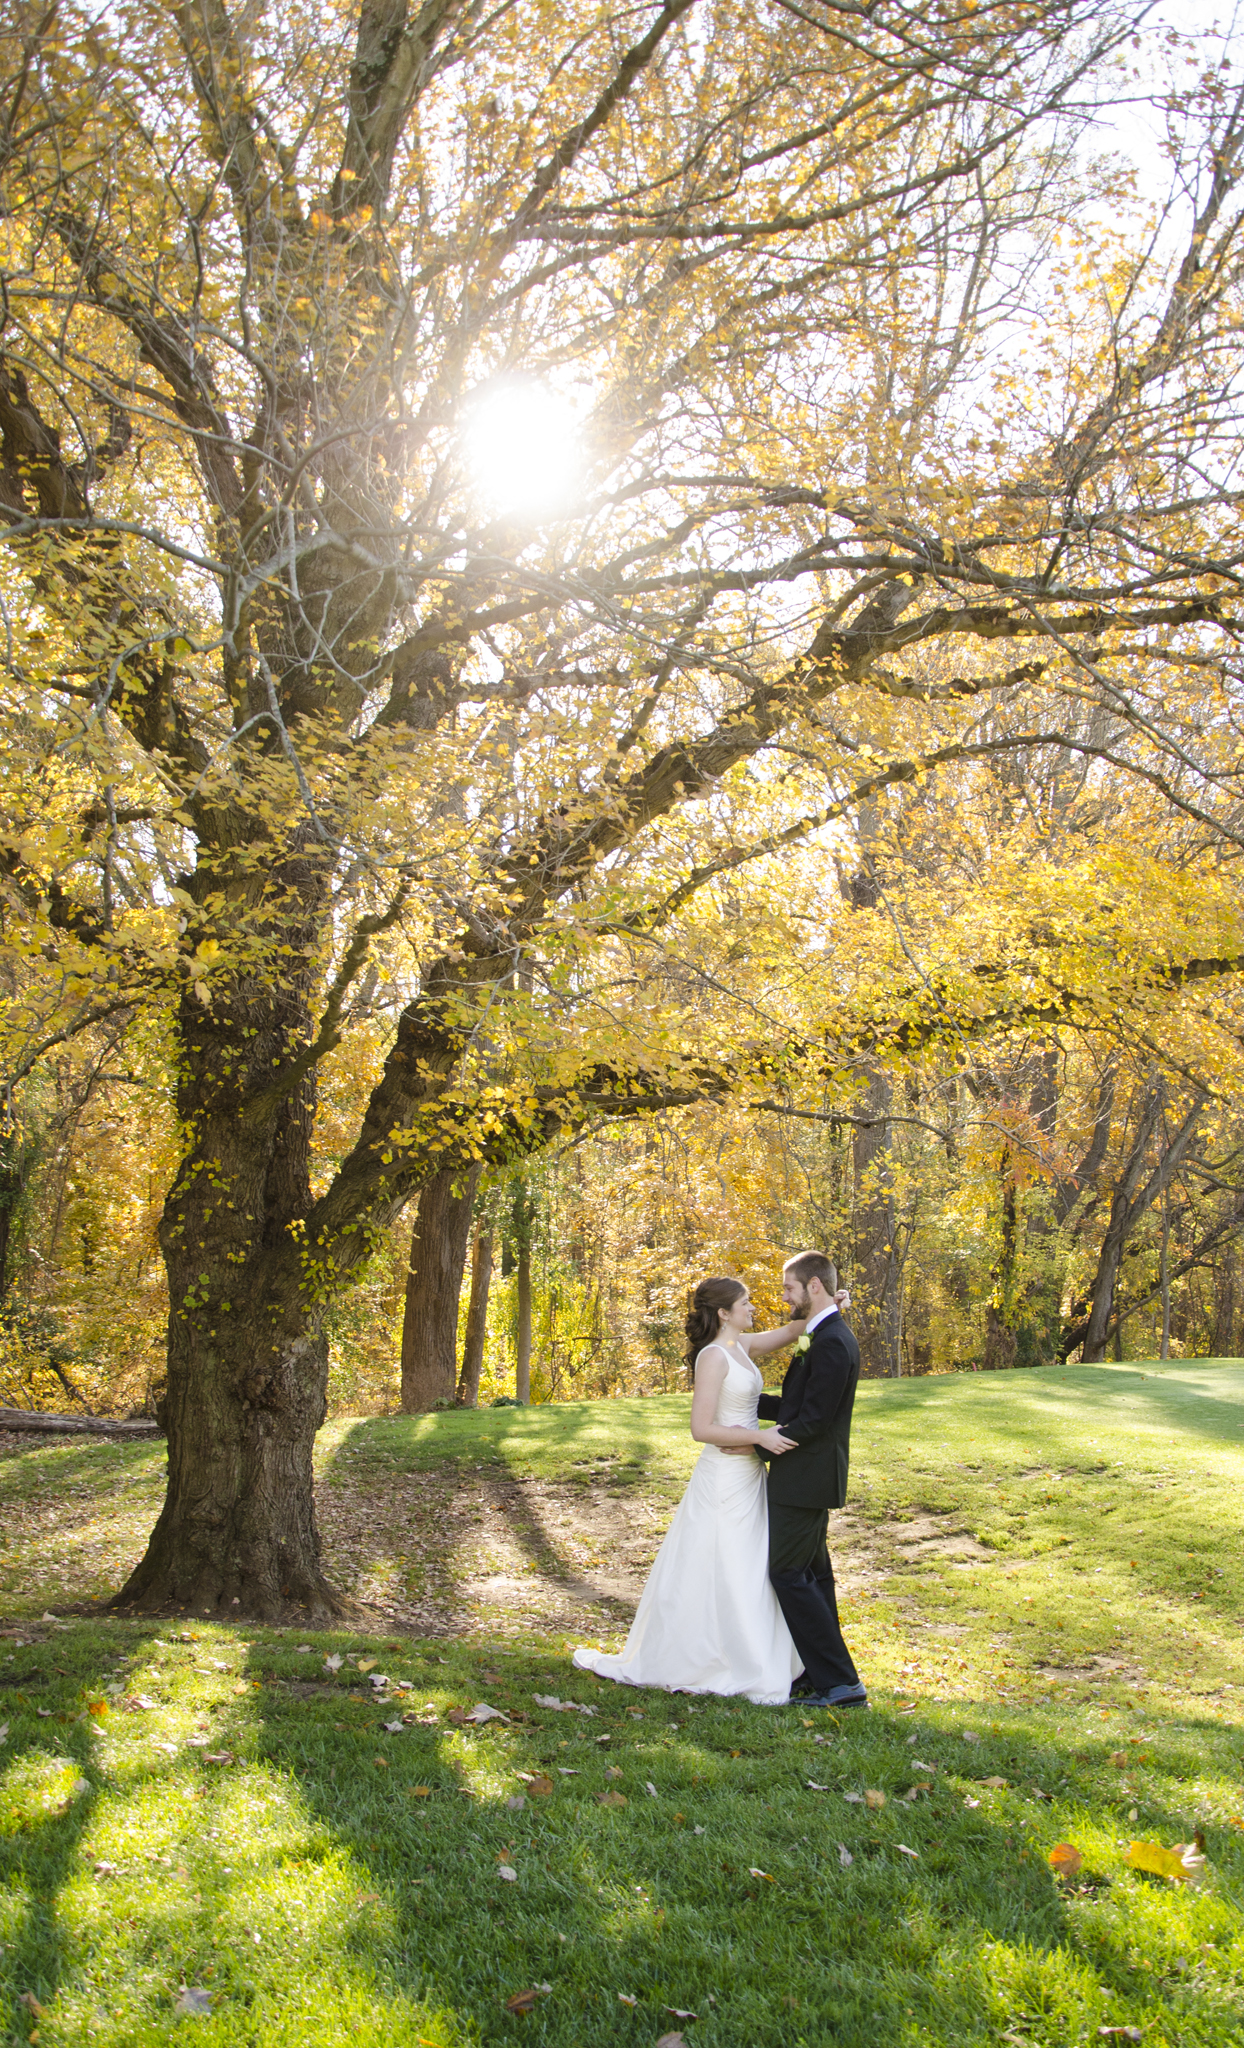 Fall wedding shot with a Nikon D800 at Newton White Mansion in Baltimore